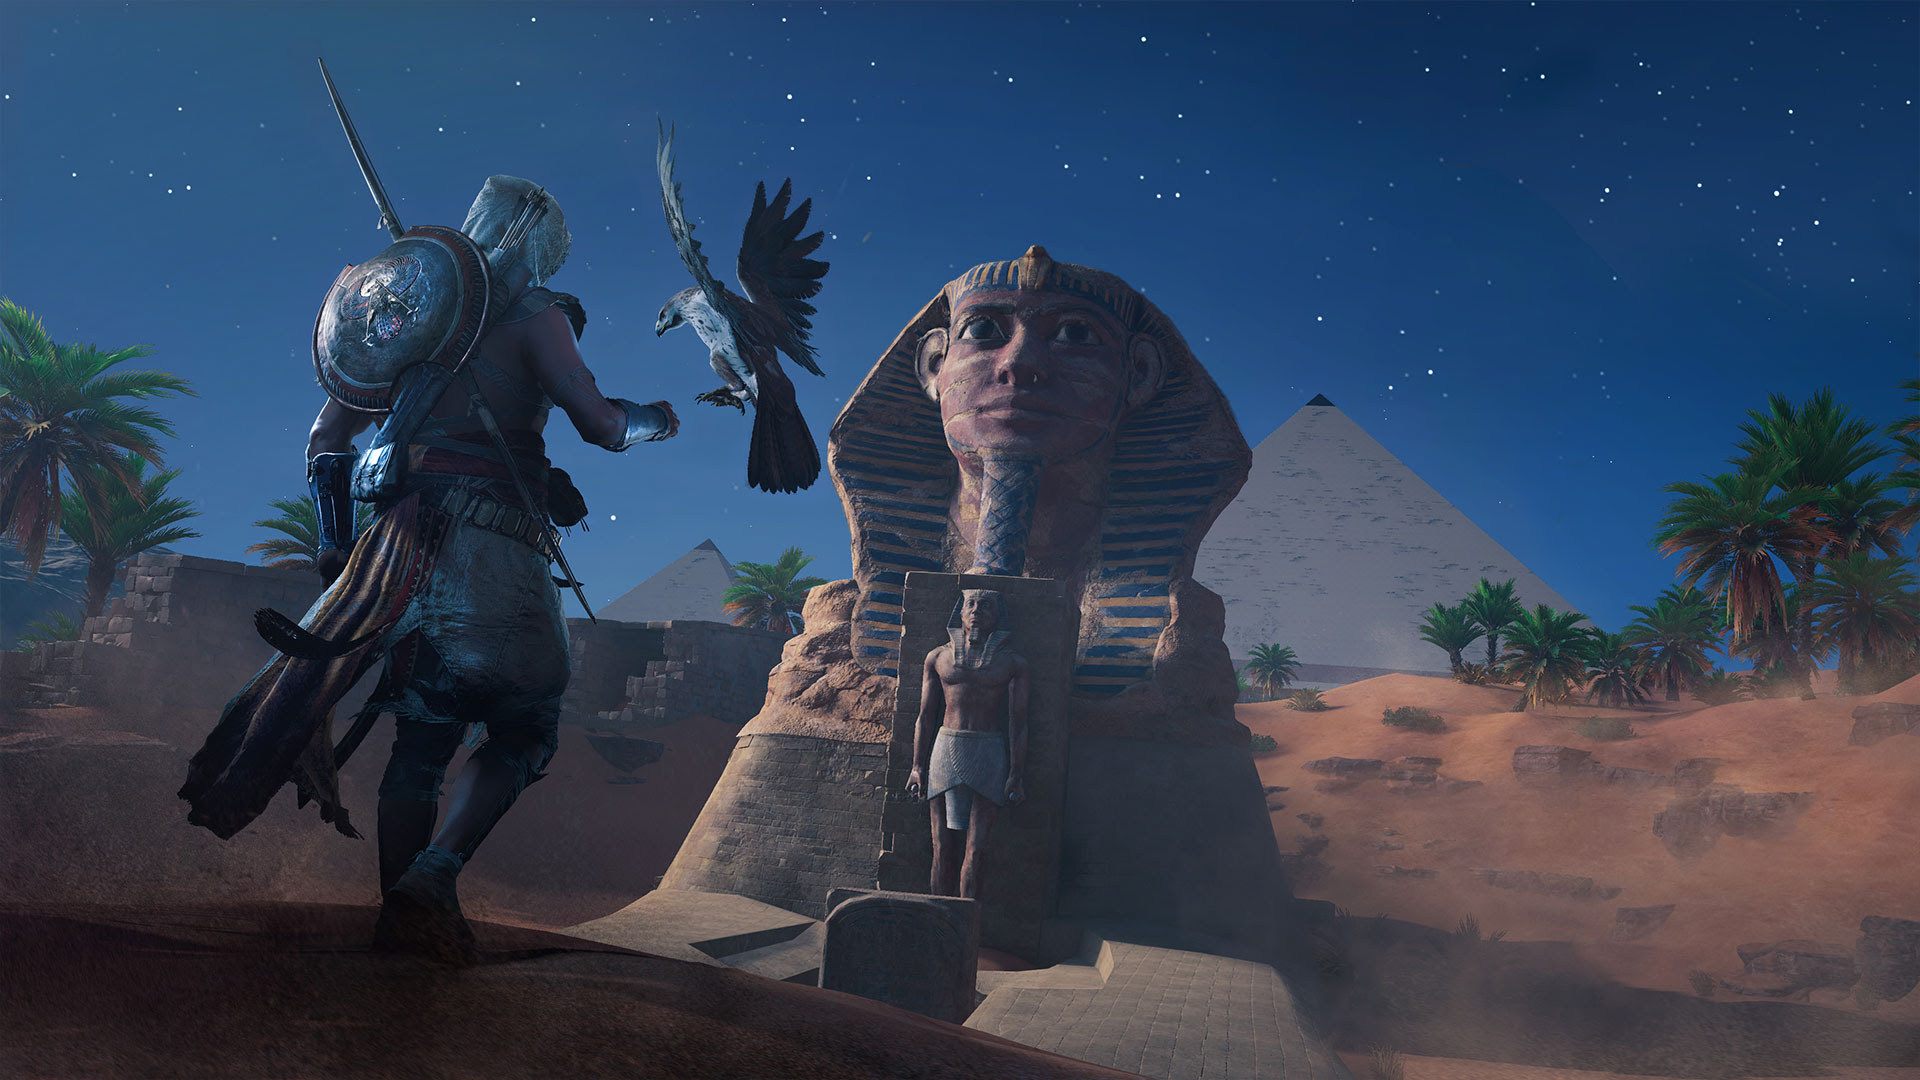 Assassin's Creed: Origins won't fail your mission upon detection screenshot